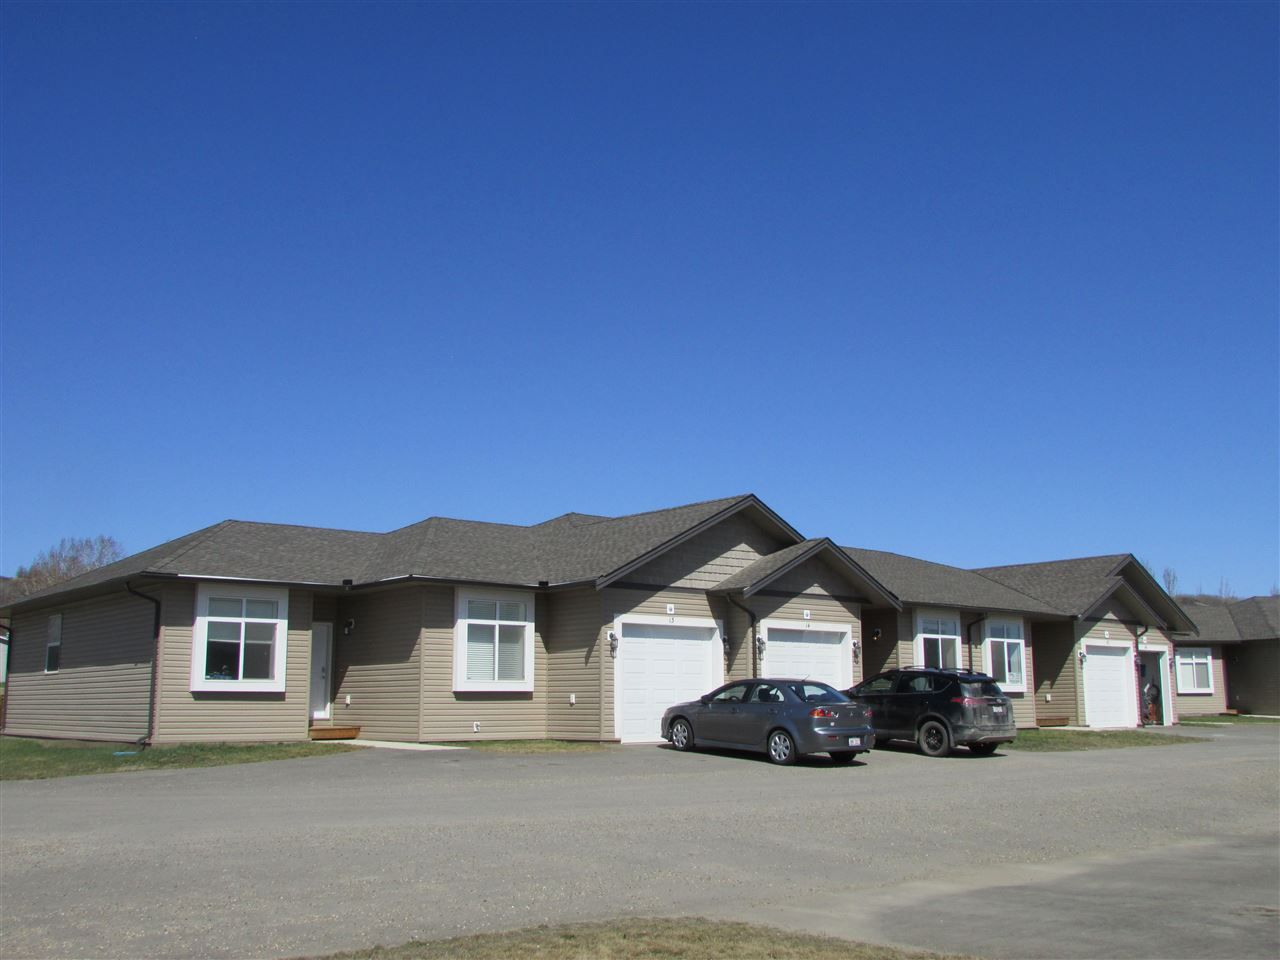 "Main Photo: 14 9707 99 Avenue: Taylor Condo for sale in ""LONE WOLF ESTATES"" (Fort St. John (Zone 60))  : MLS®# R2410489"